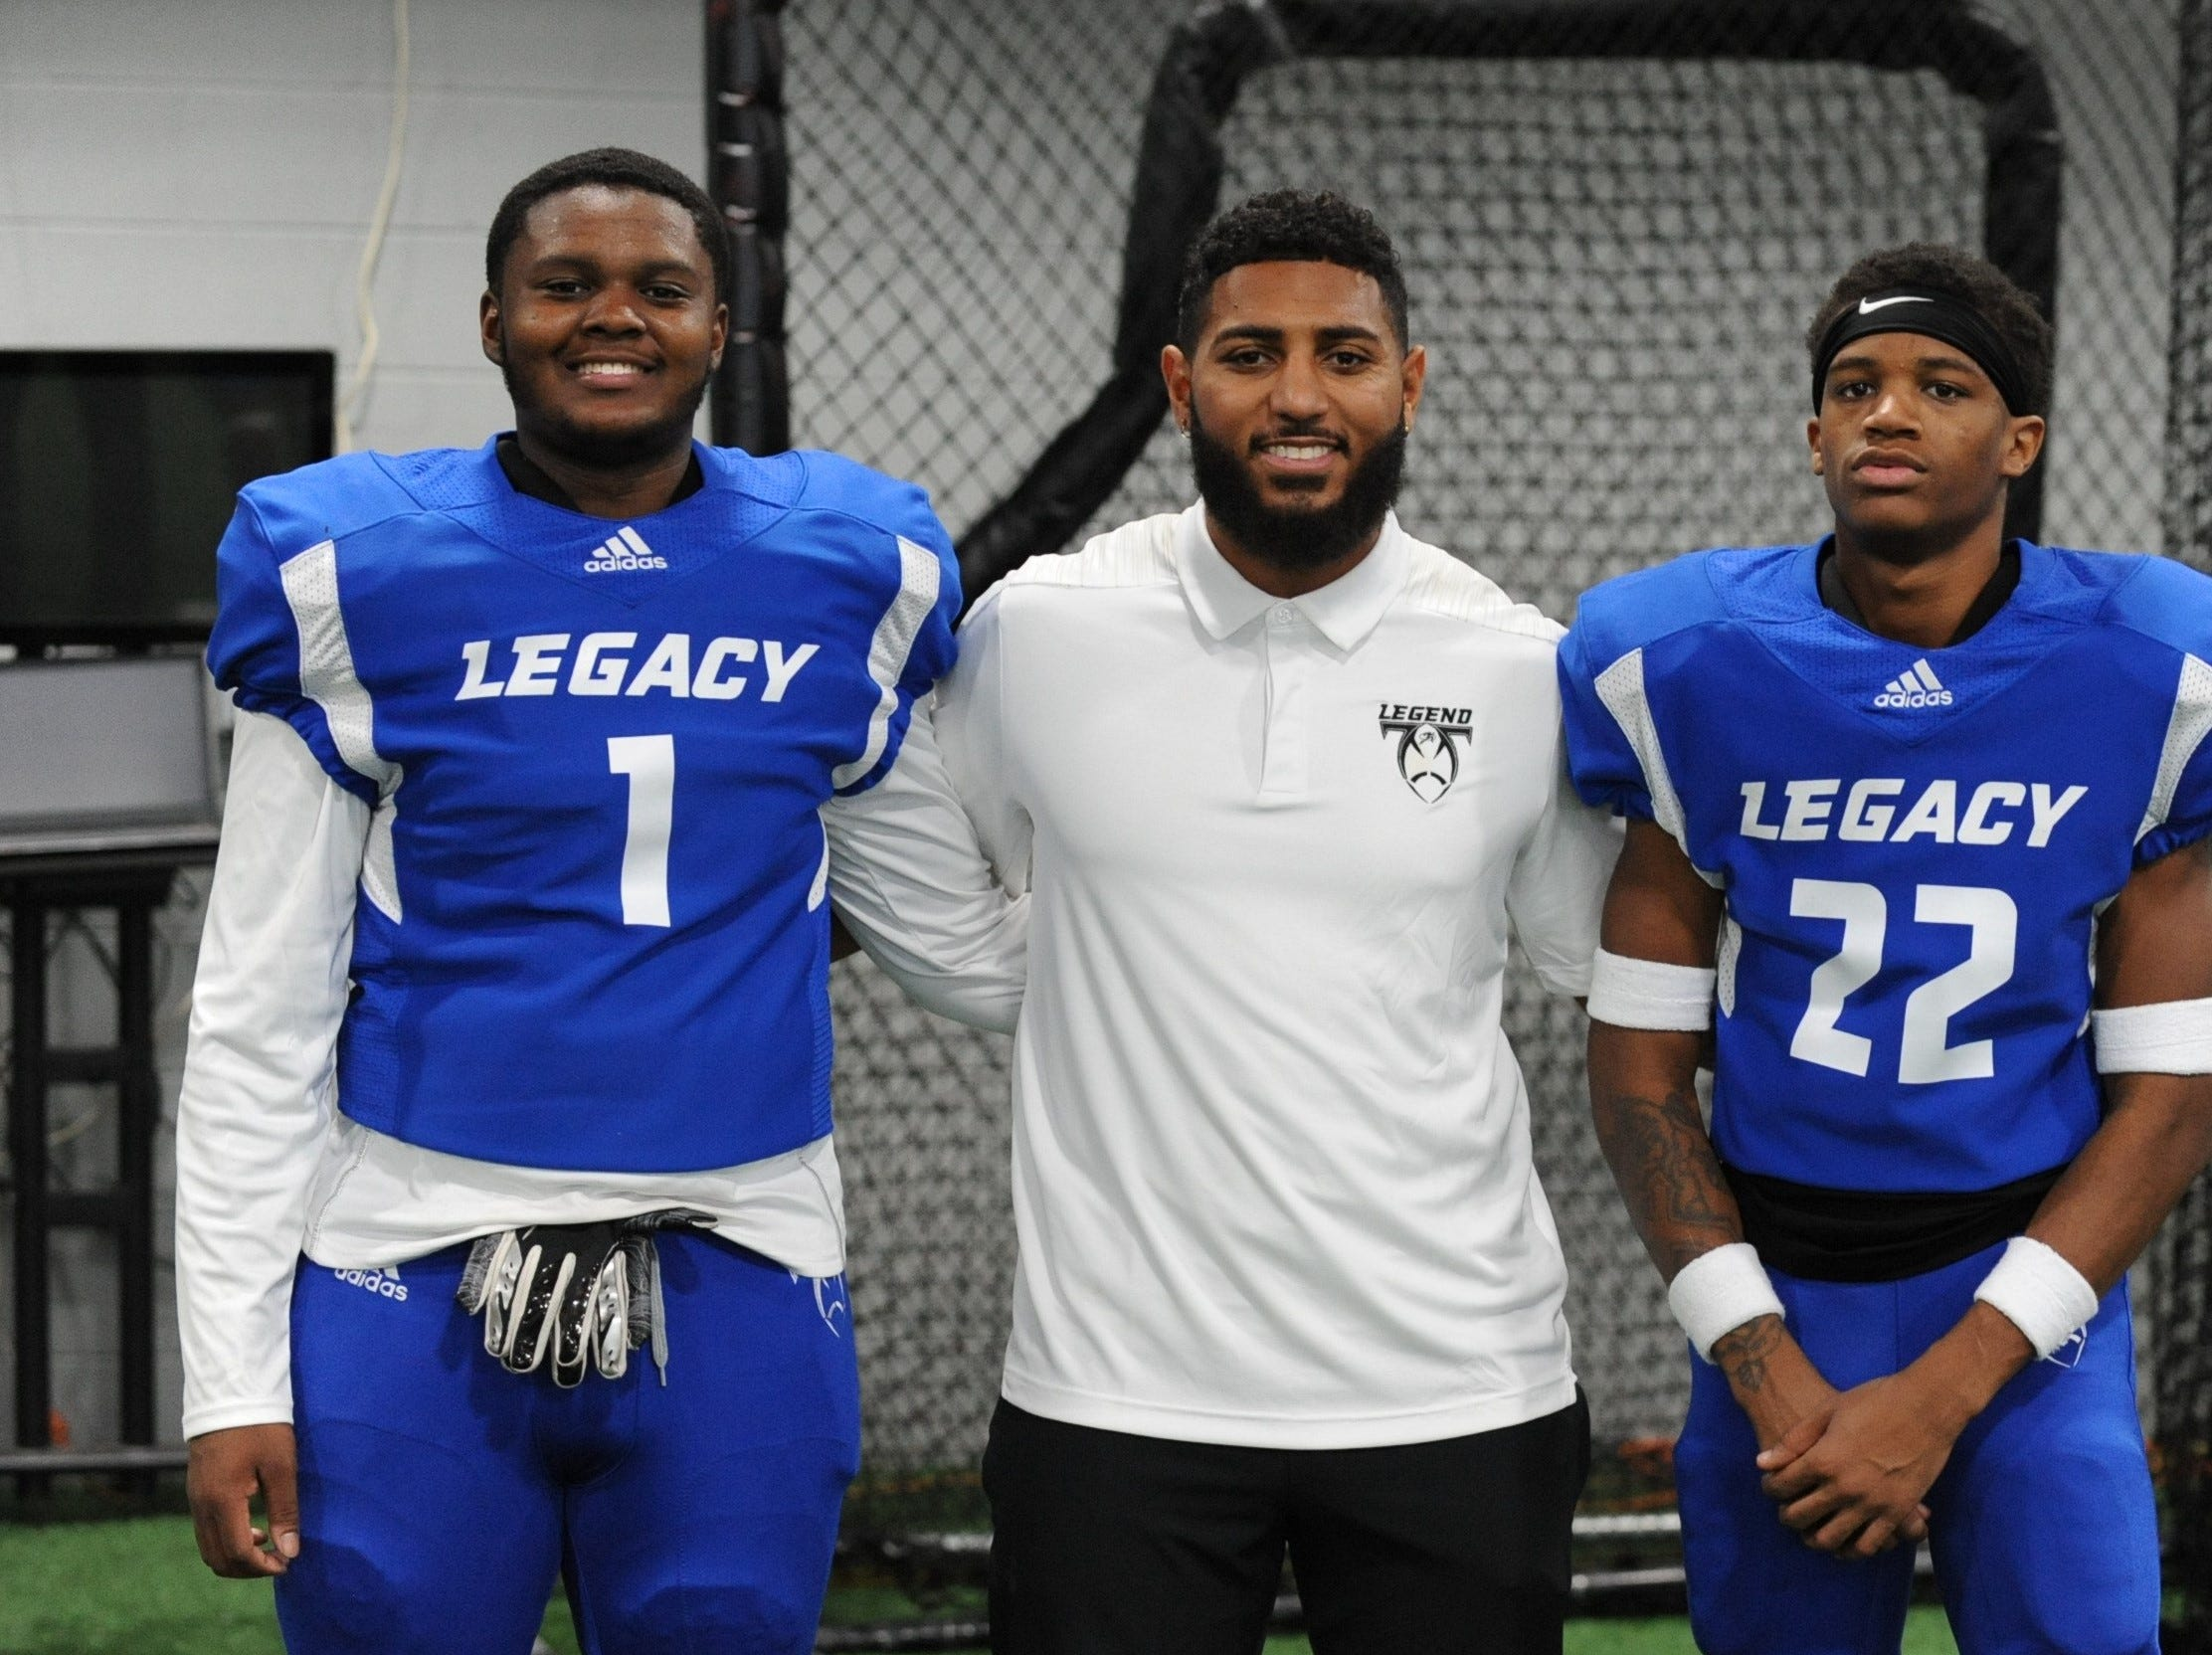 Ian Iler (center), head coach at Redford Union, poses with two of his players -- Carl Ware (1) and JaJuan Stokes (22). Iler also is director of player development for Legacy Center Football in Brighton.